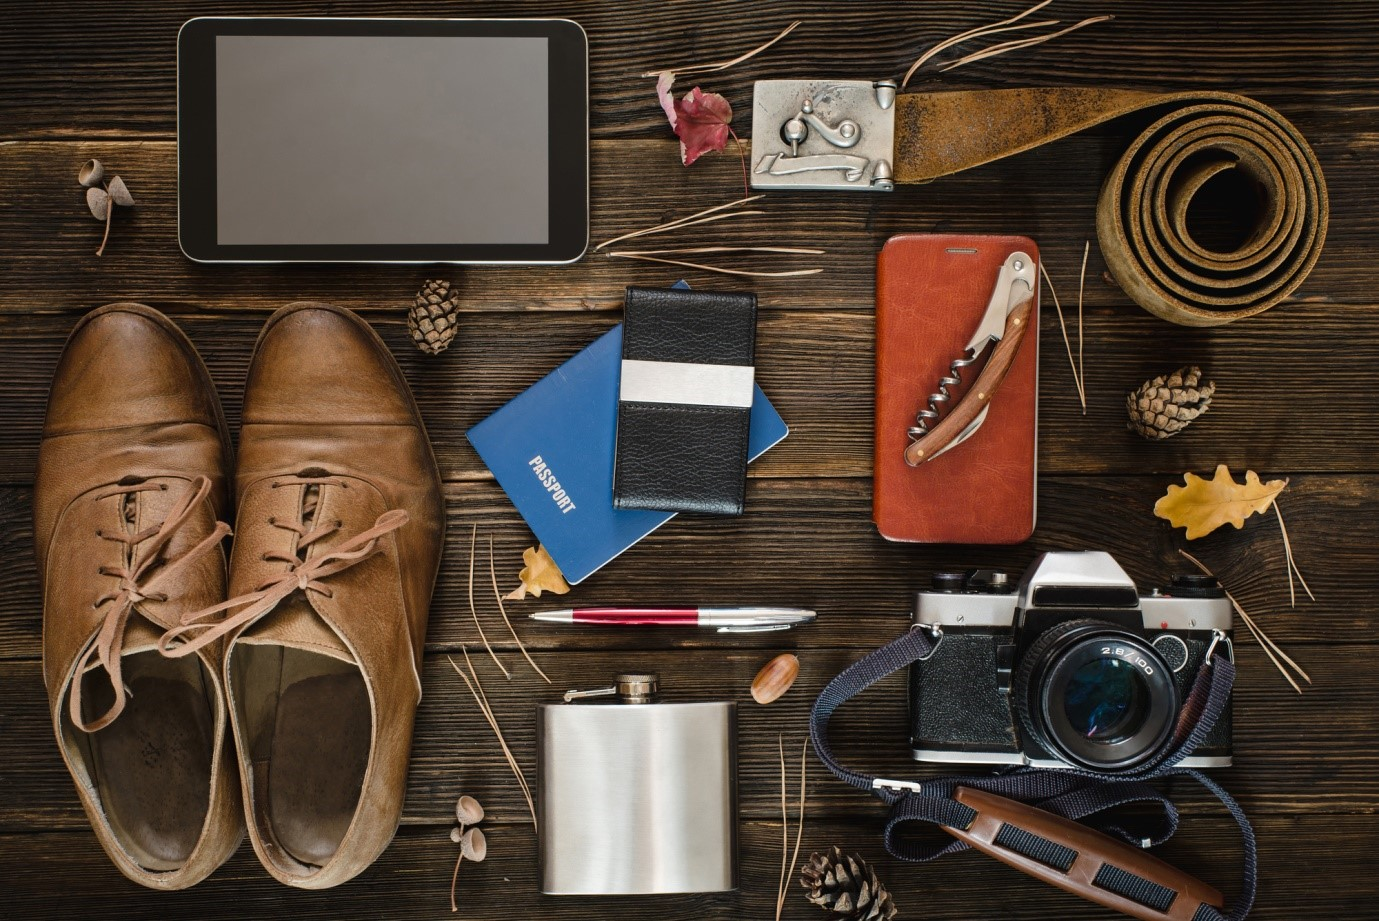 The 5 Best Travel Accessories Every Globetrotter Needs